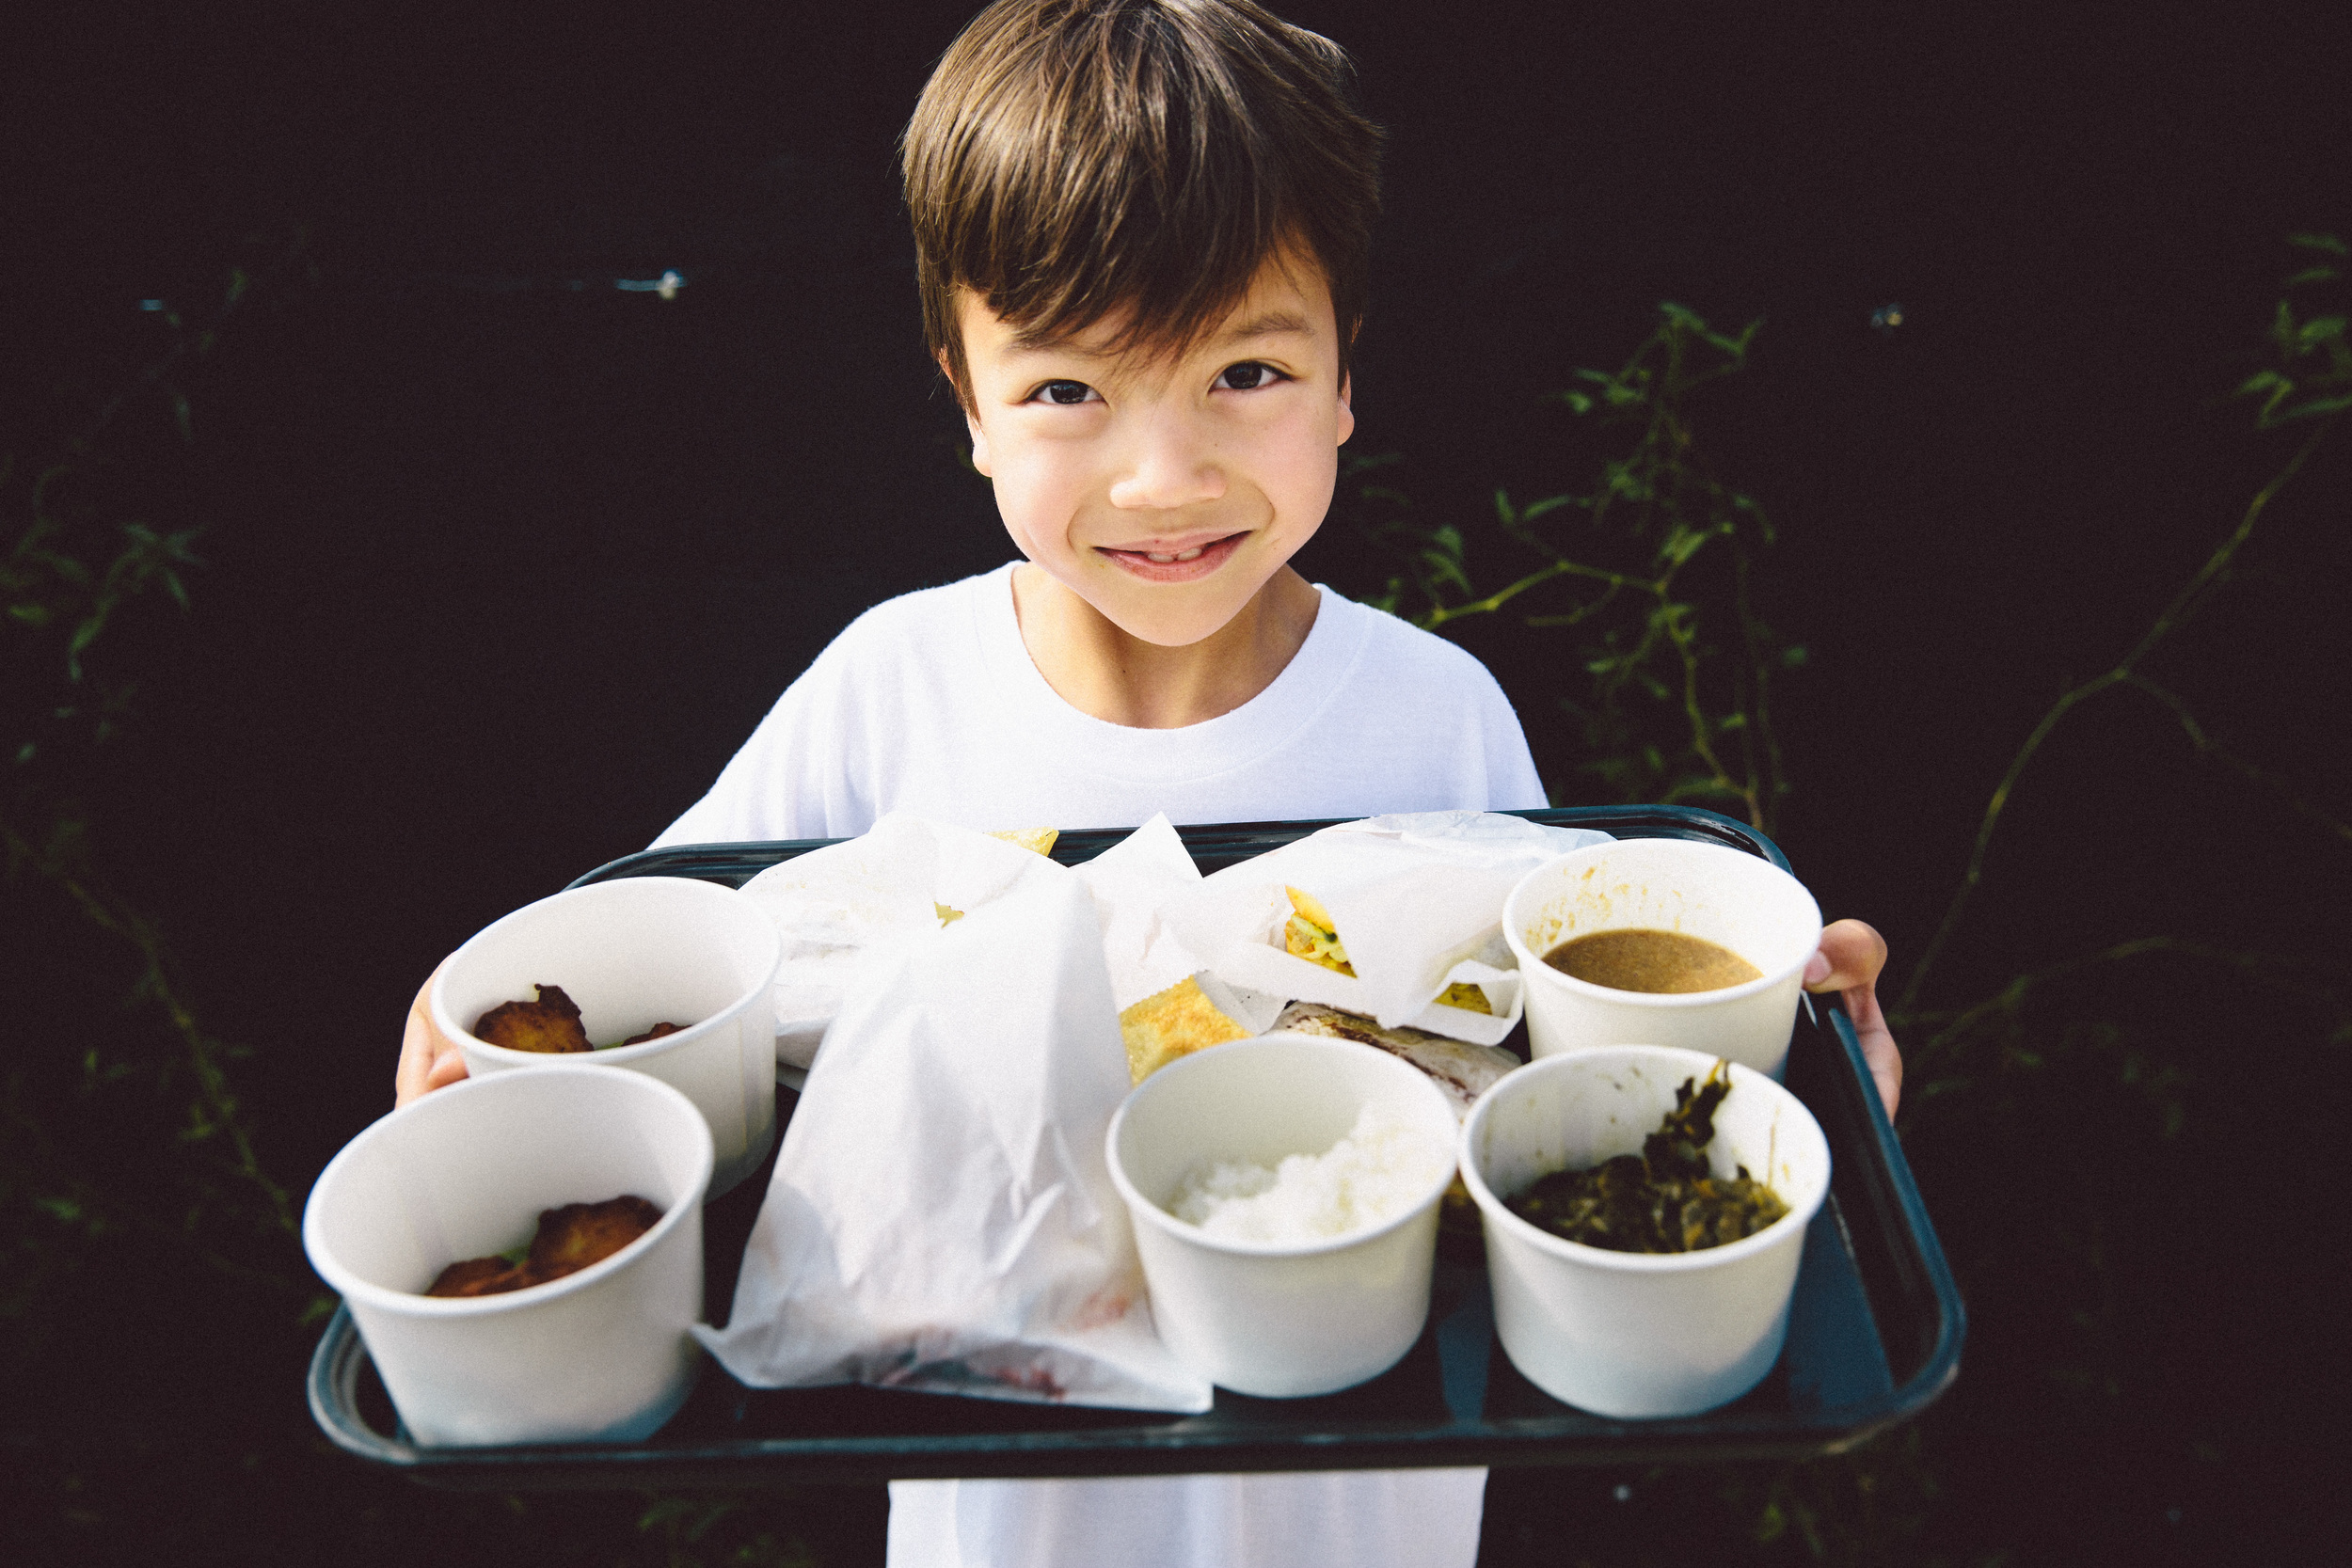 Child showing his tray of LocoL Food ©Audrey Ma